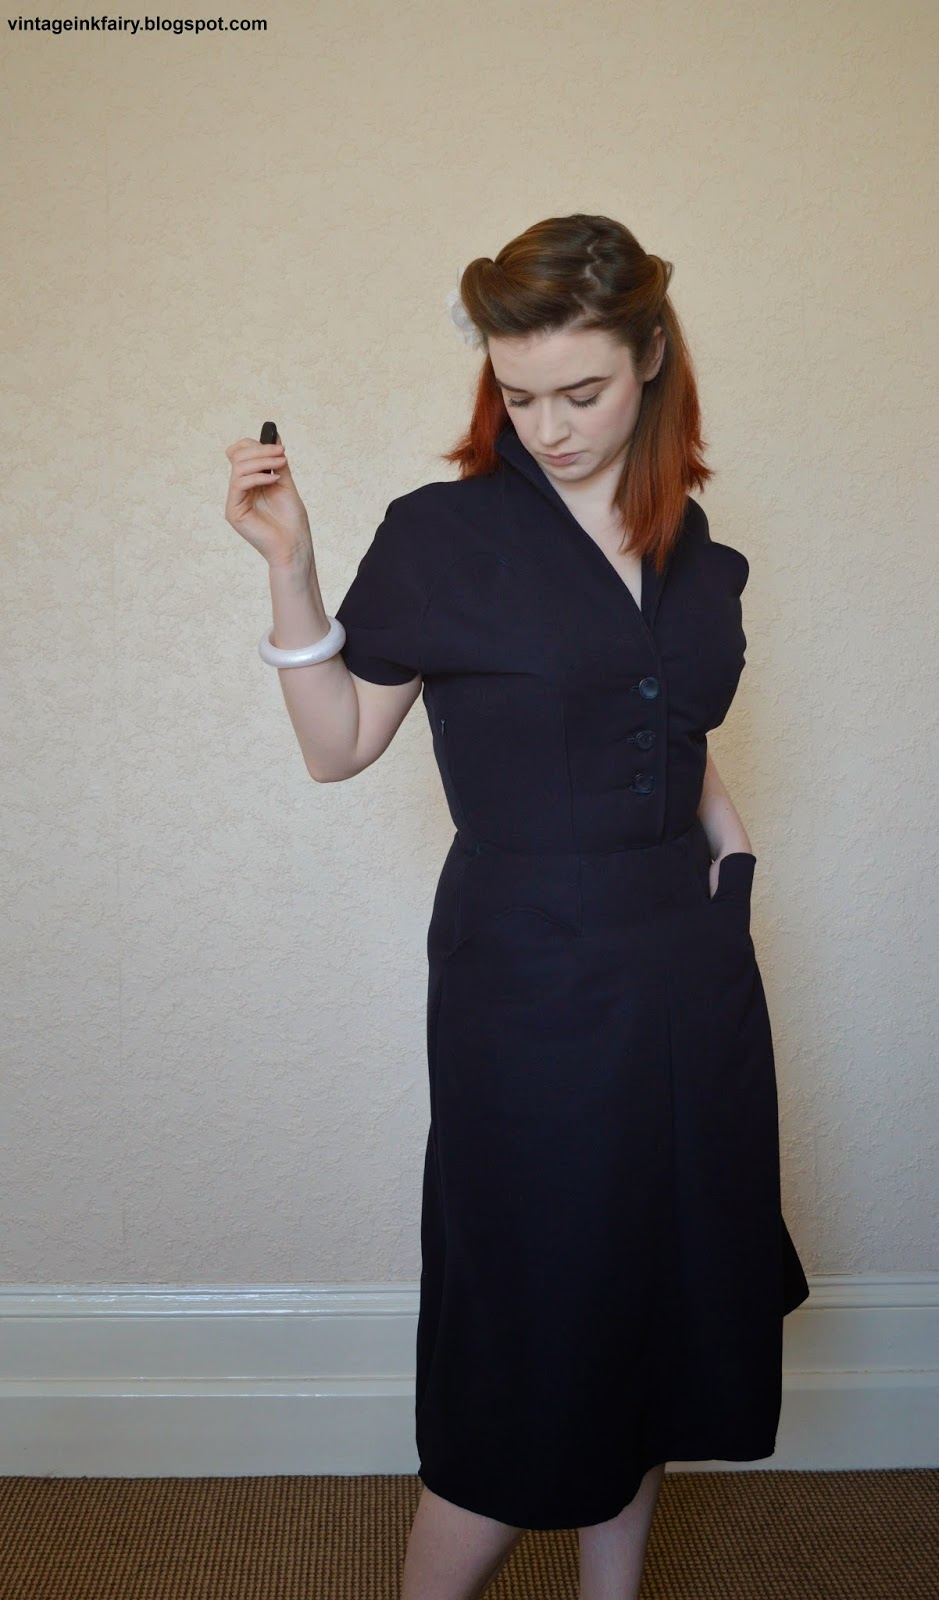 Vintage Reproduction Dress